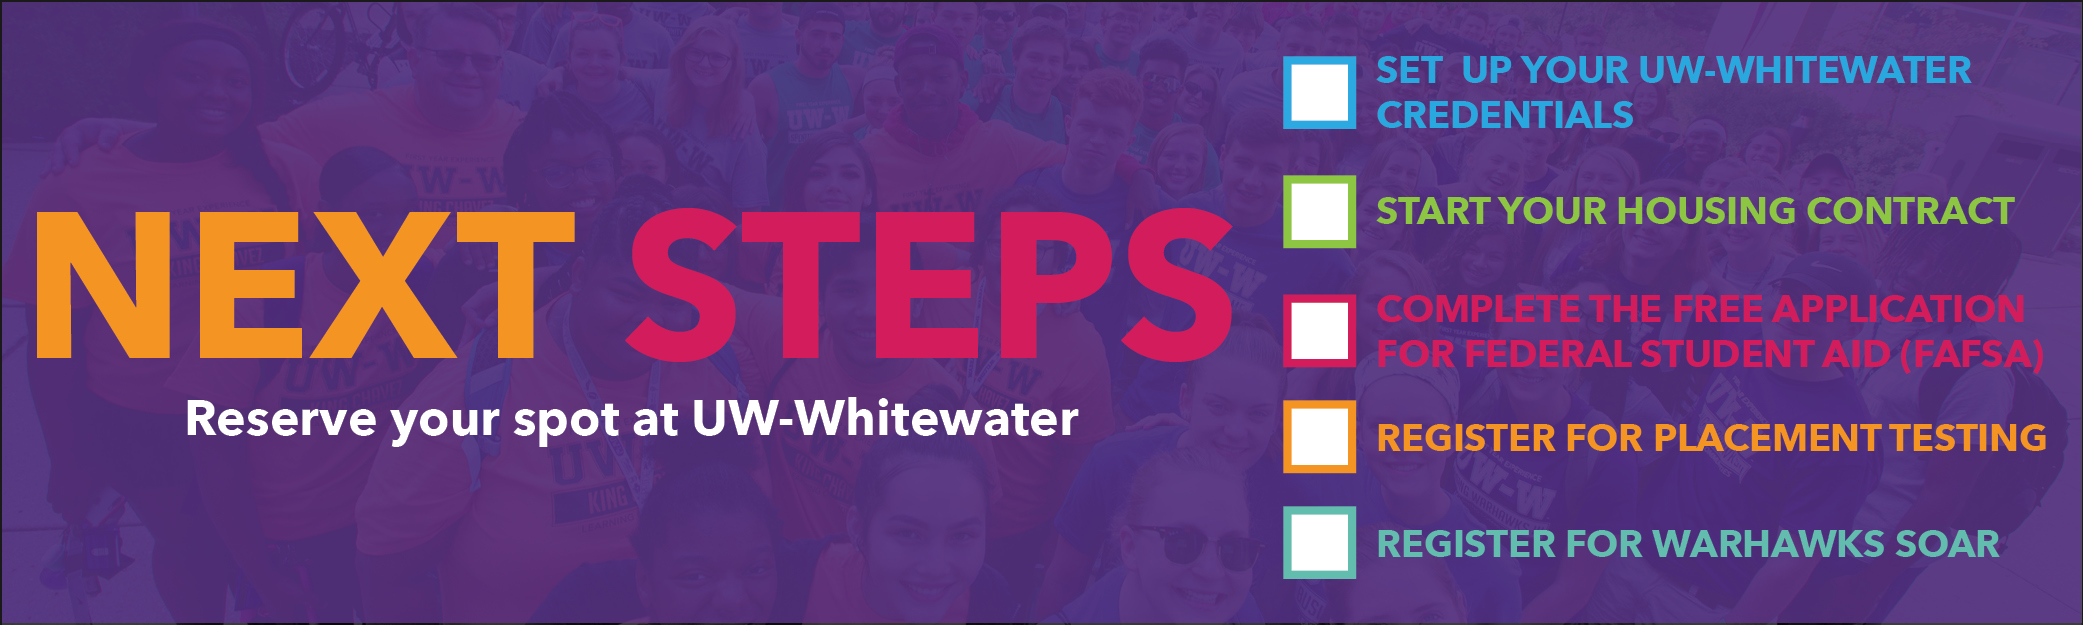 Next Steps: Reserve your spot at UW-Whitewater